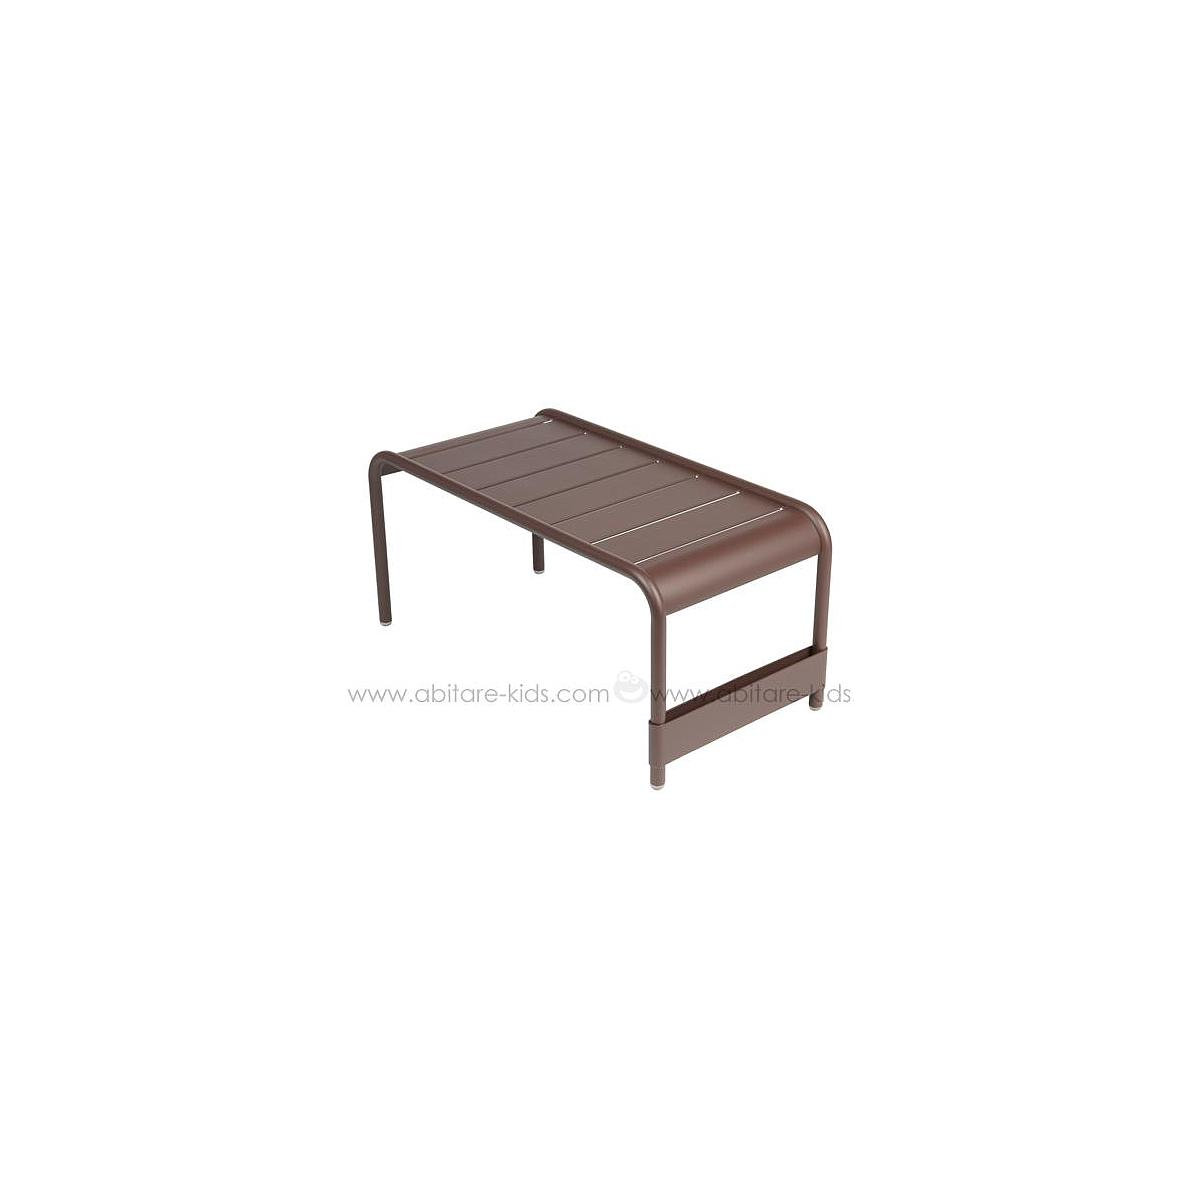 LUXEMBOURG by Fermob Grande table basse rouille